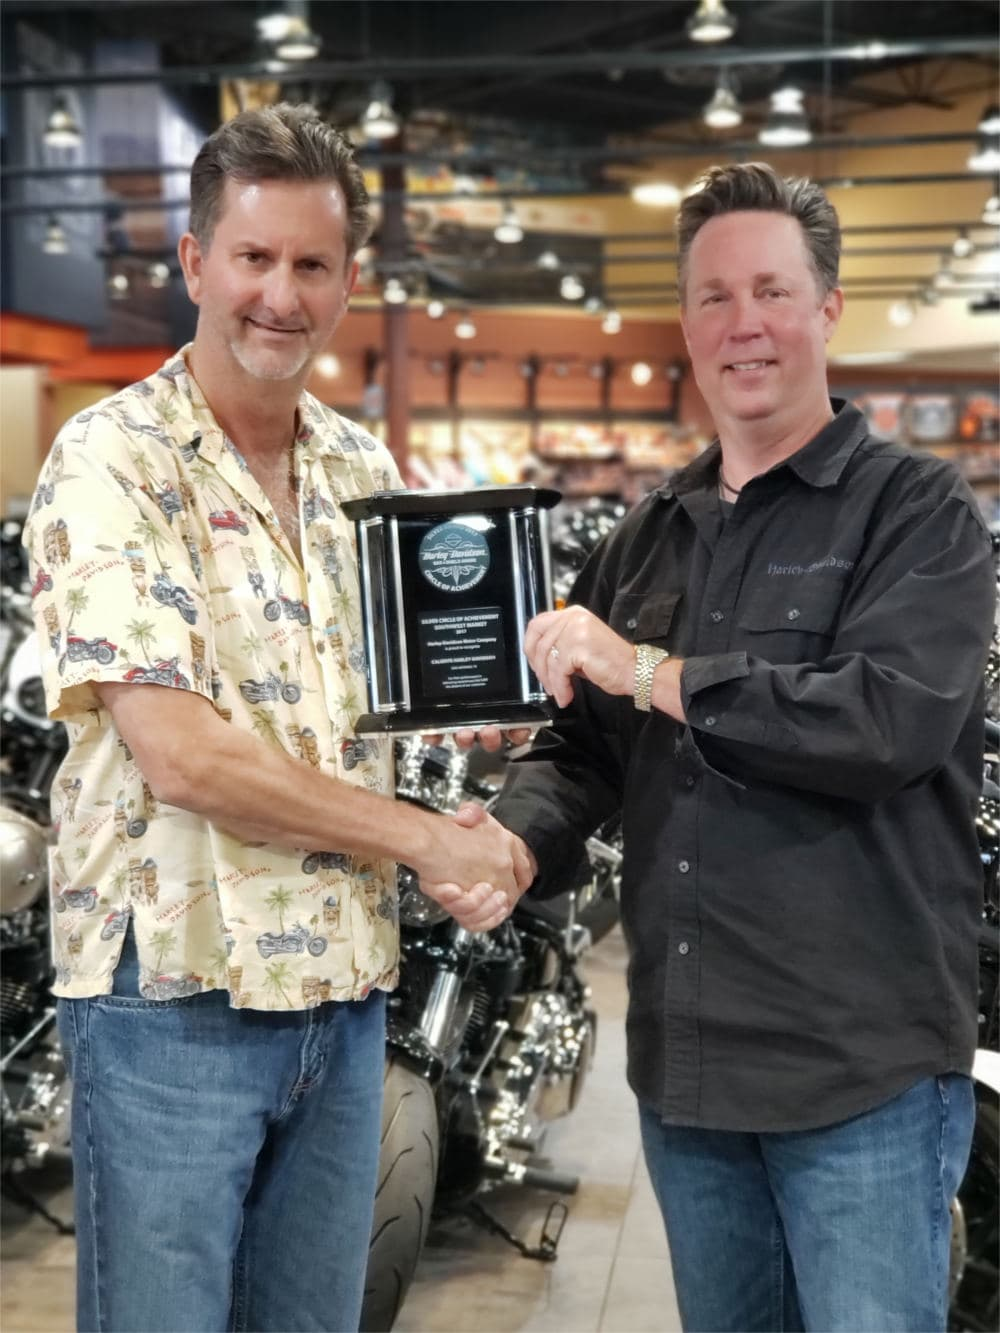 A staff-member receives the Harley-Davidson Bar and Shield award plaque.